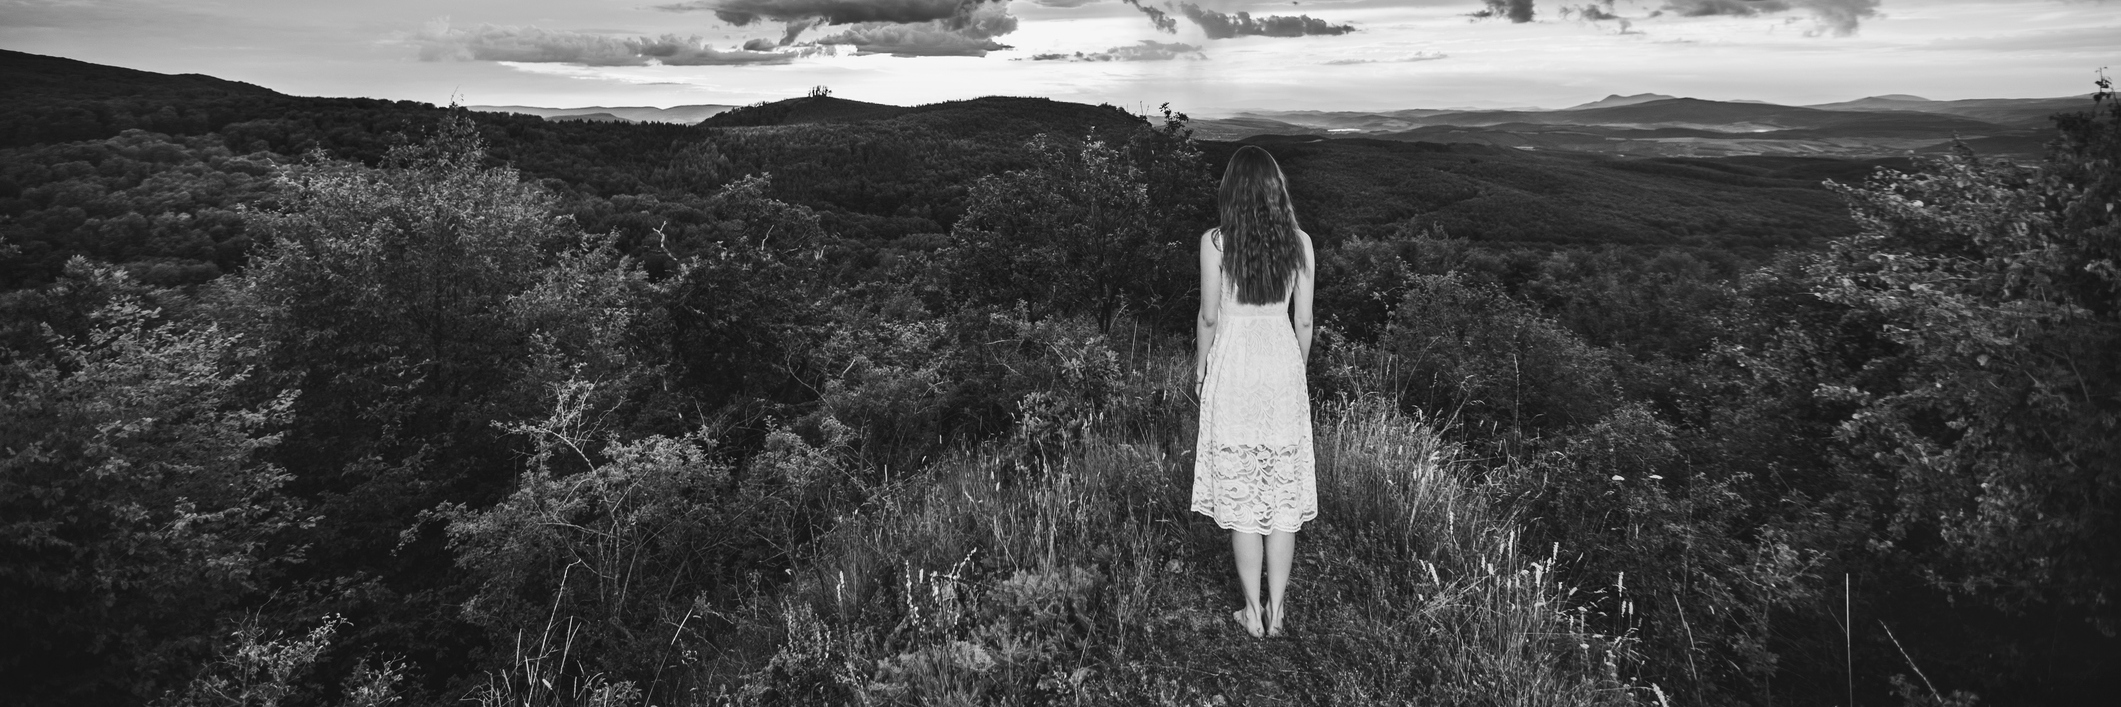 girl standing on mountain peak in black and white